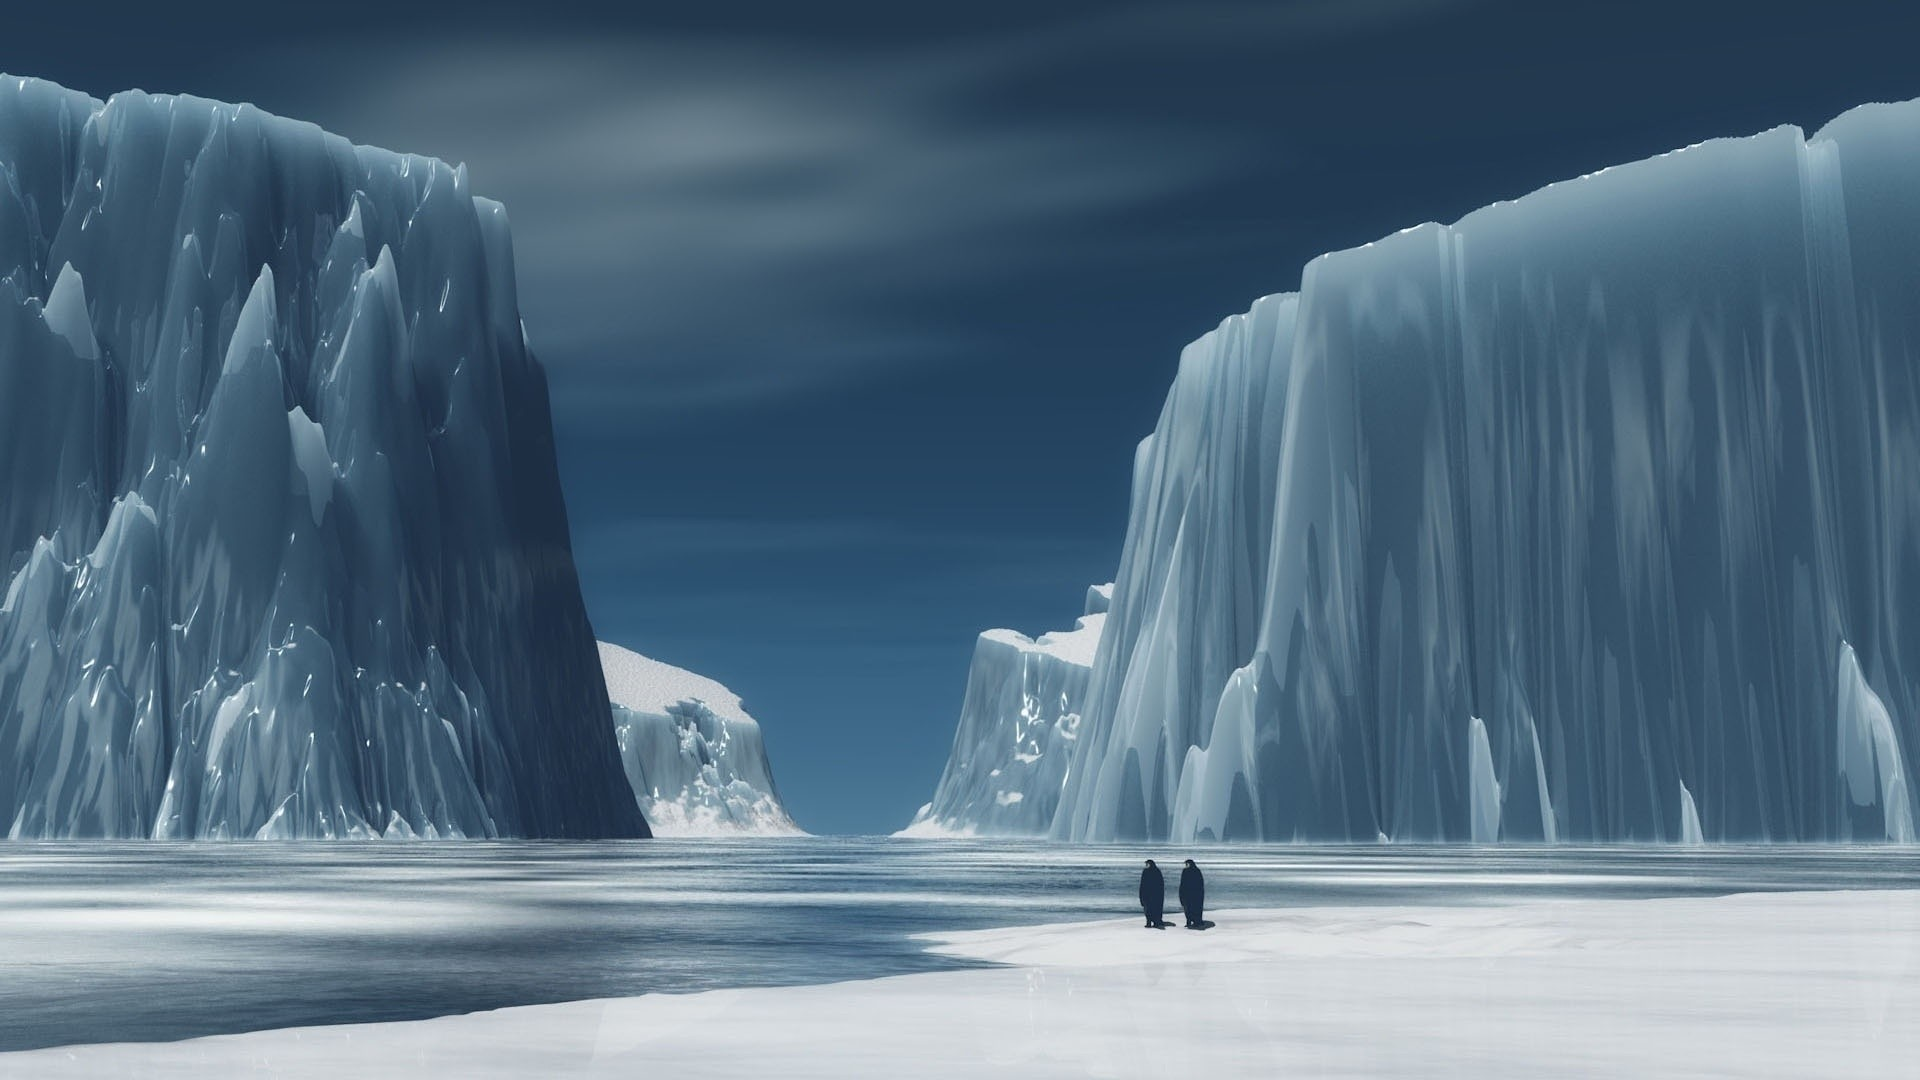 Antarctica 1920x1080 wallpaper